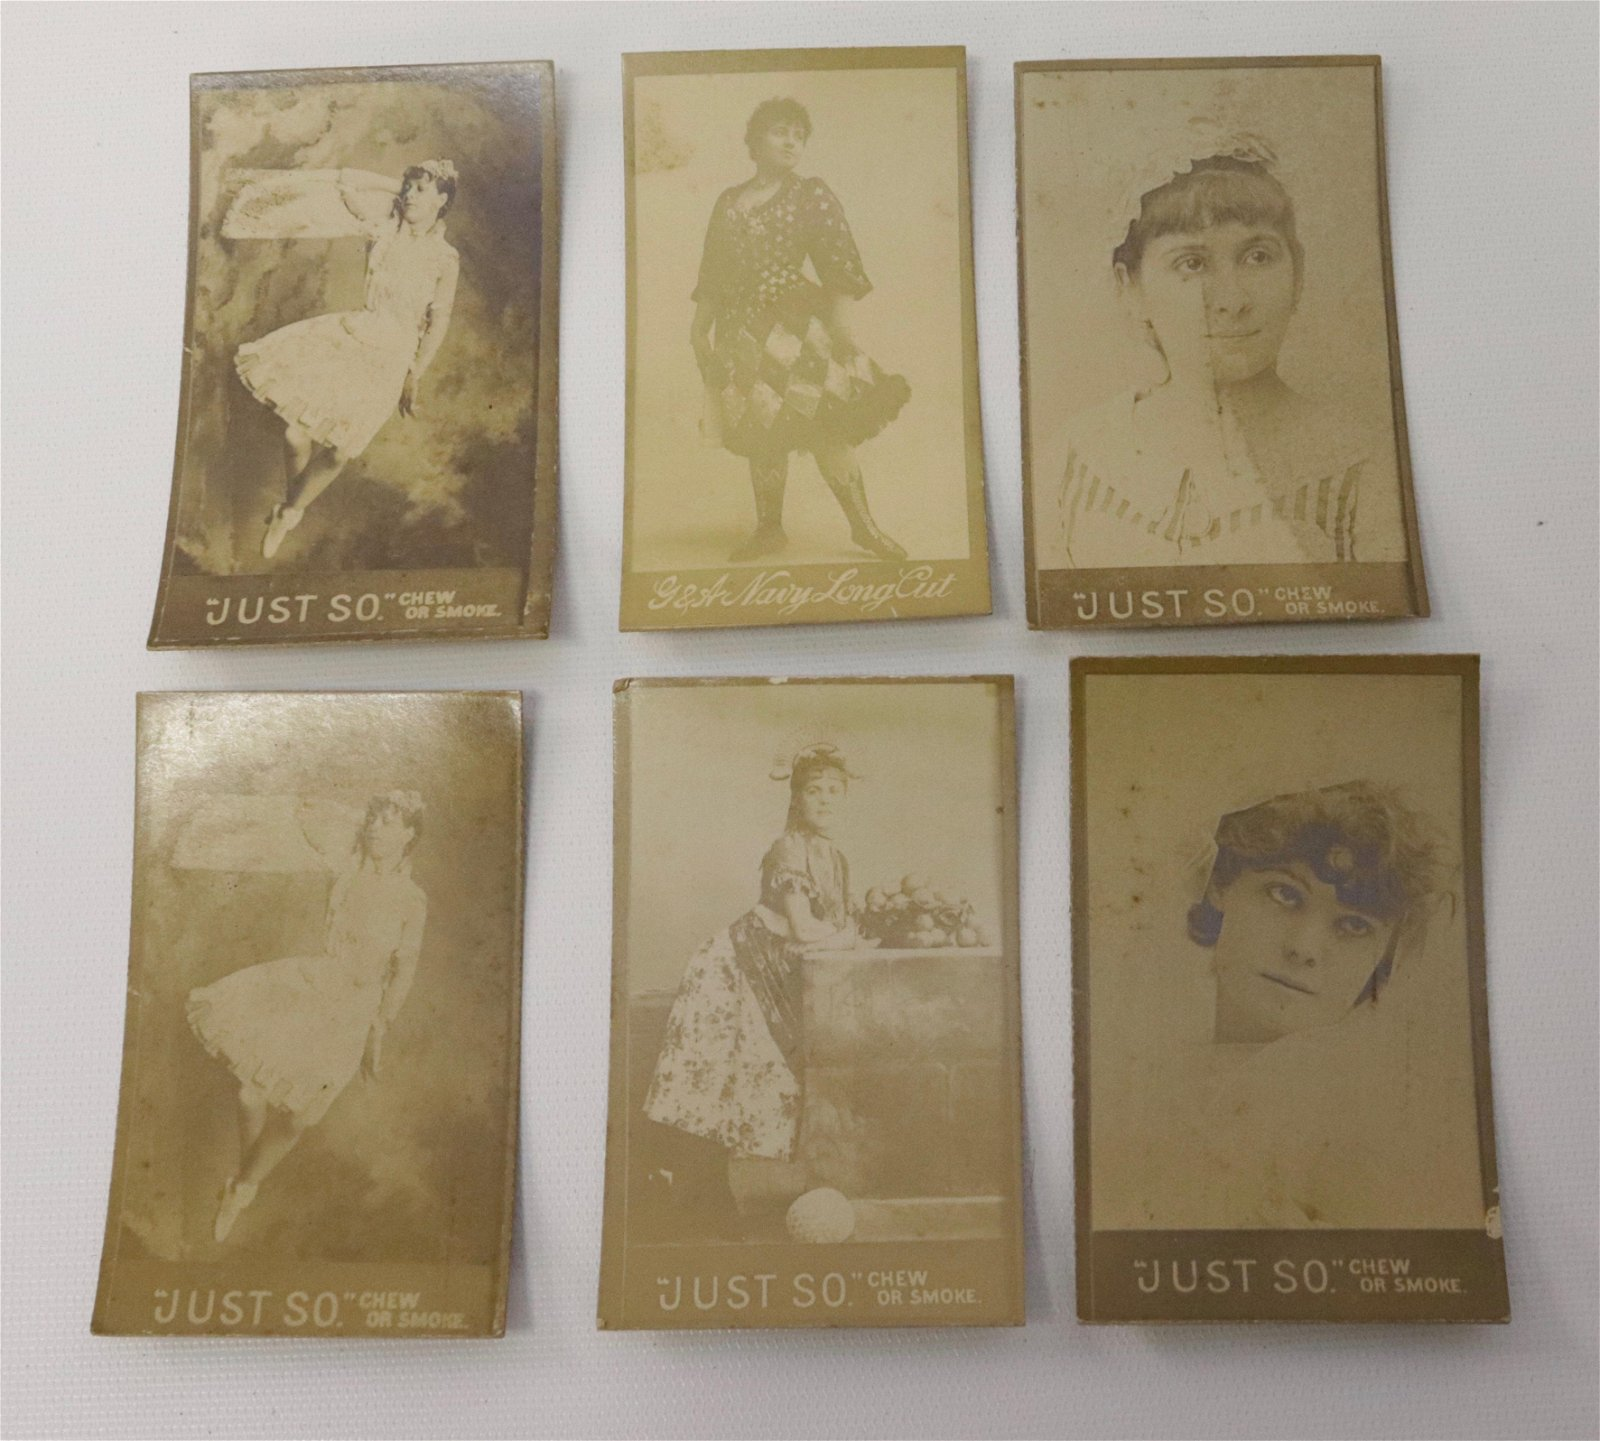 GROUP LOT OF PIN-UP ADVERTISING CARDS